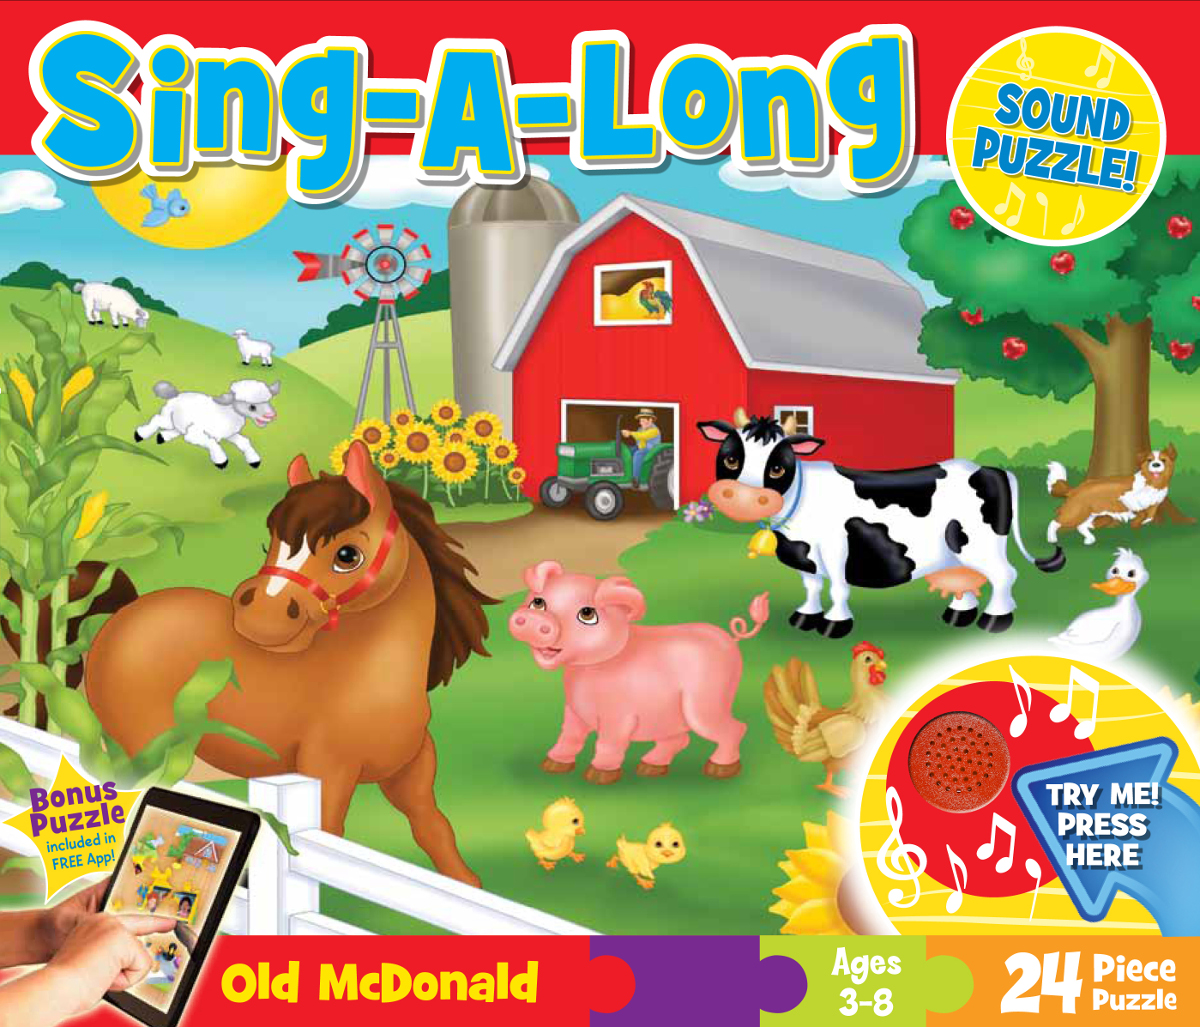 Old McDonald Floor Puzzle - Scratch and Dent Farm Jigsaw Puzzle